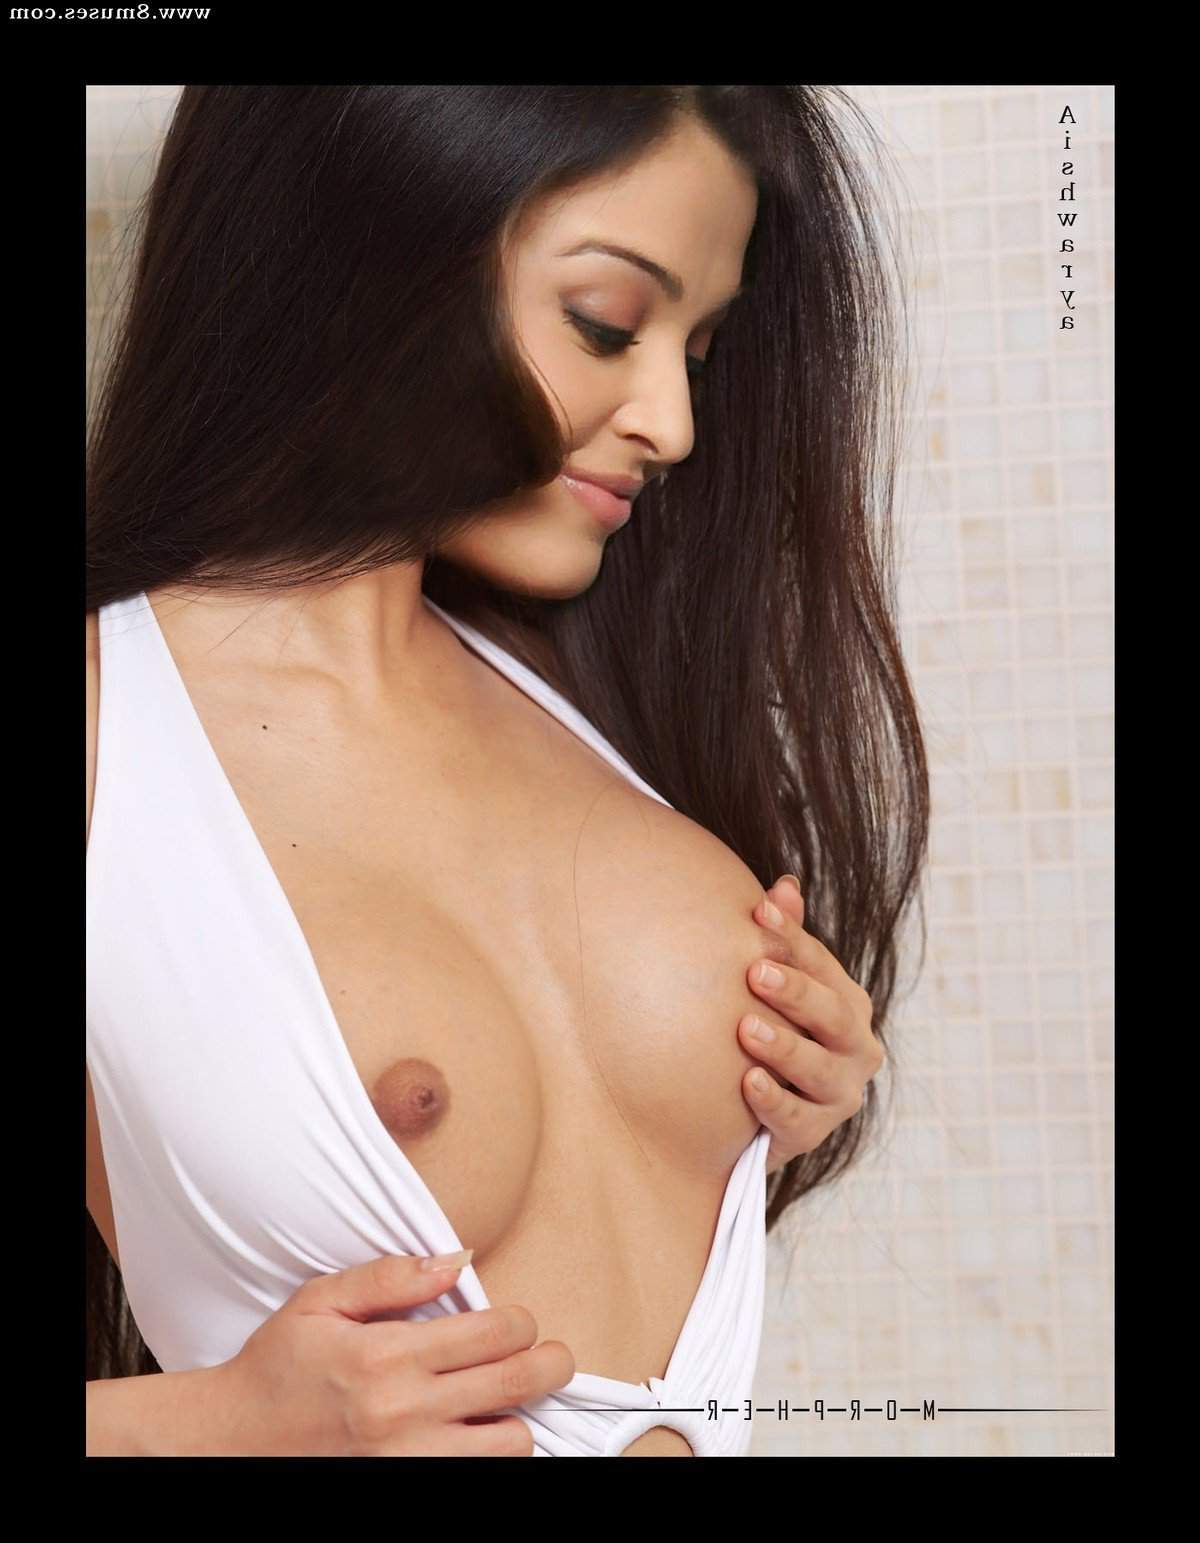 Fake-Celebrities-Sex-Pictures/Aishwarya-Rai Aishwarya_Rai__8muses_-_Sex_and_Porn_Comics_88.jpg